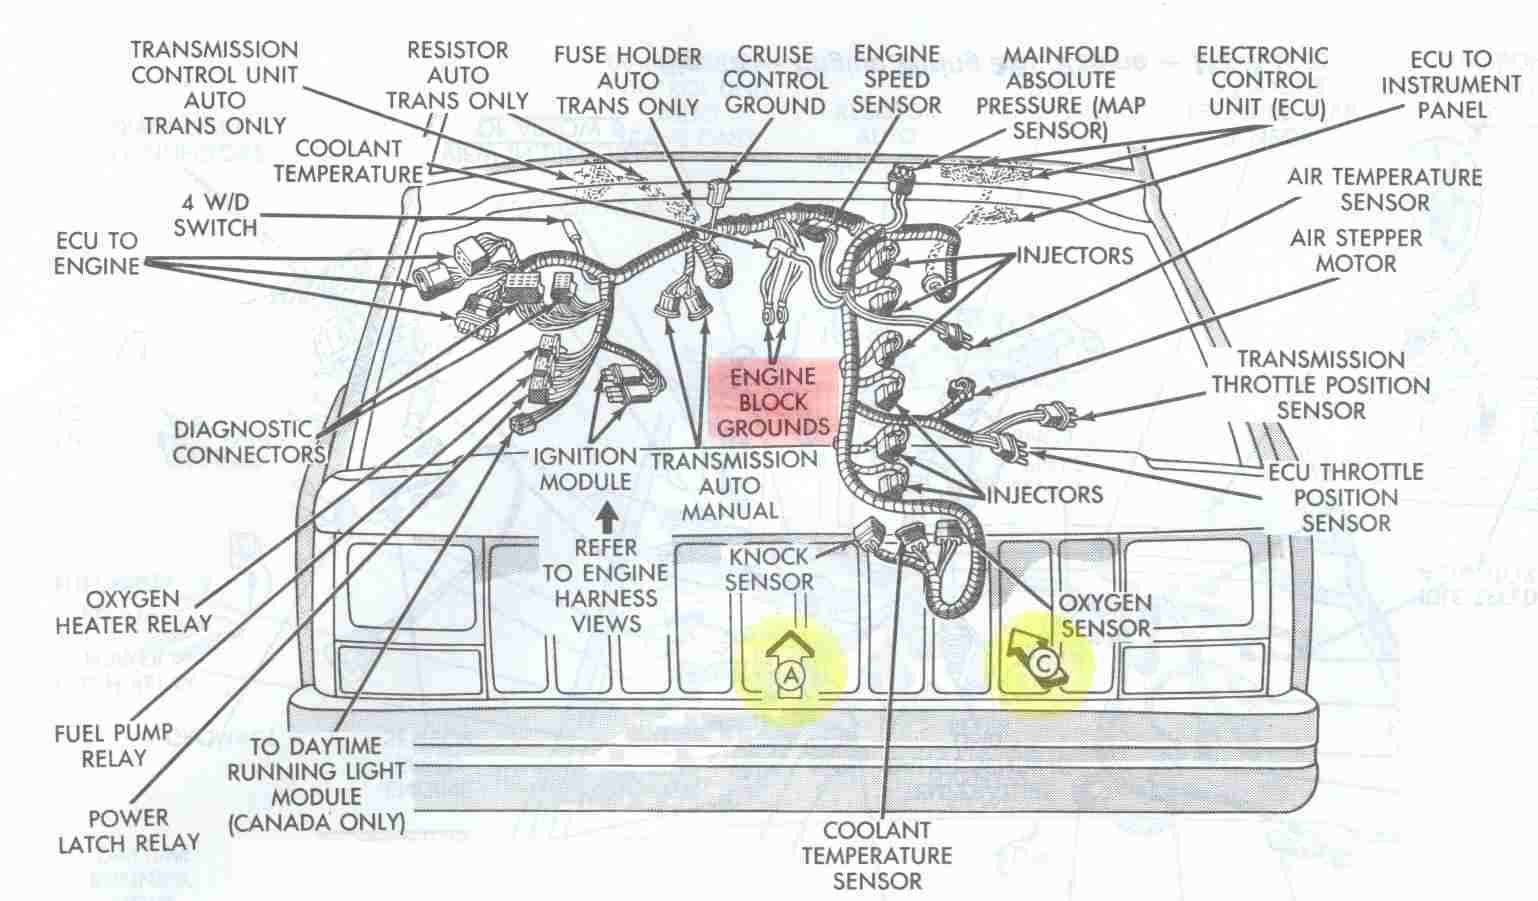 Engine Bay schematic showing major electrical ground points for 40L Jeep Cherokee engines